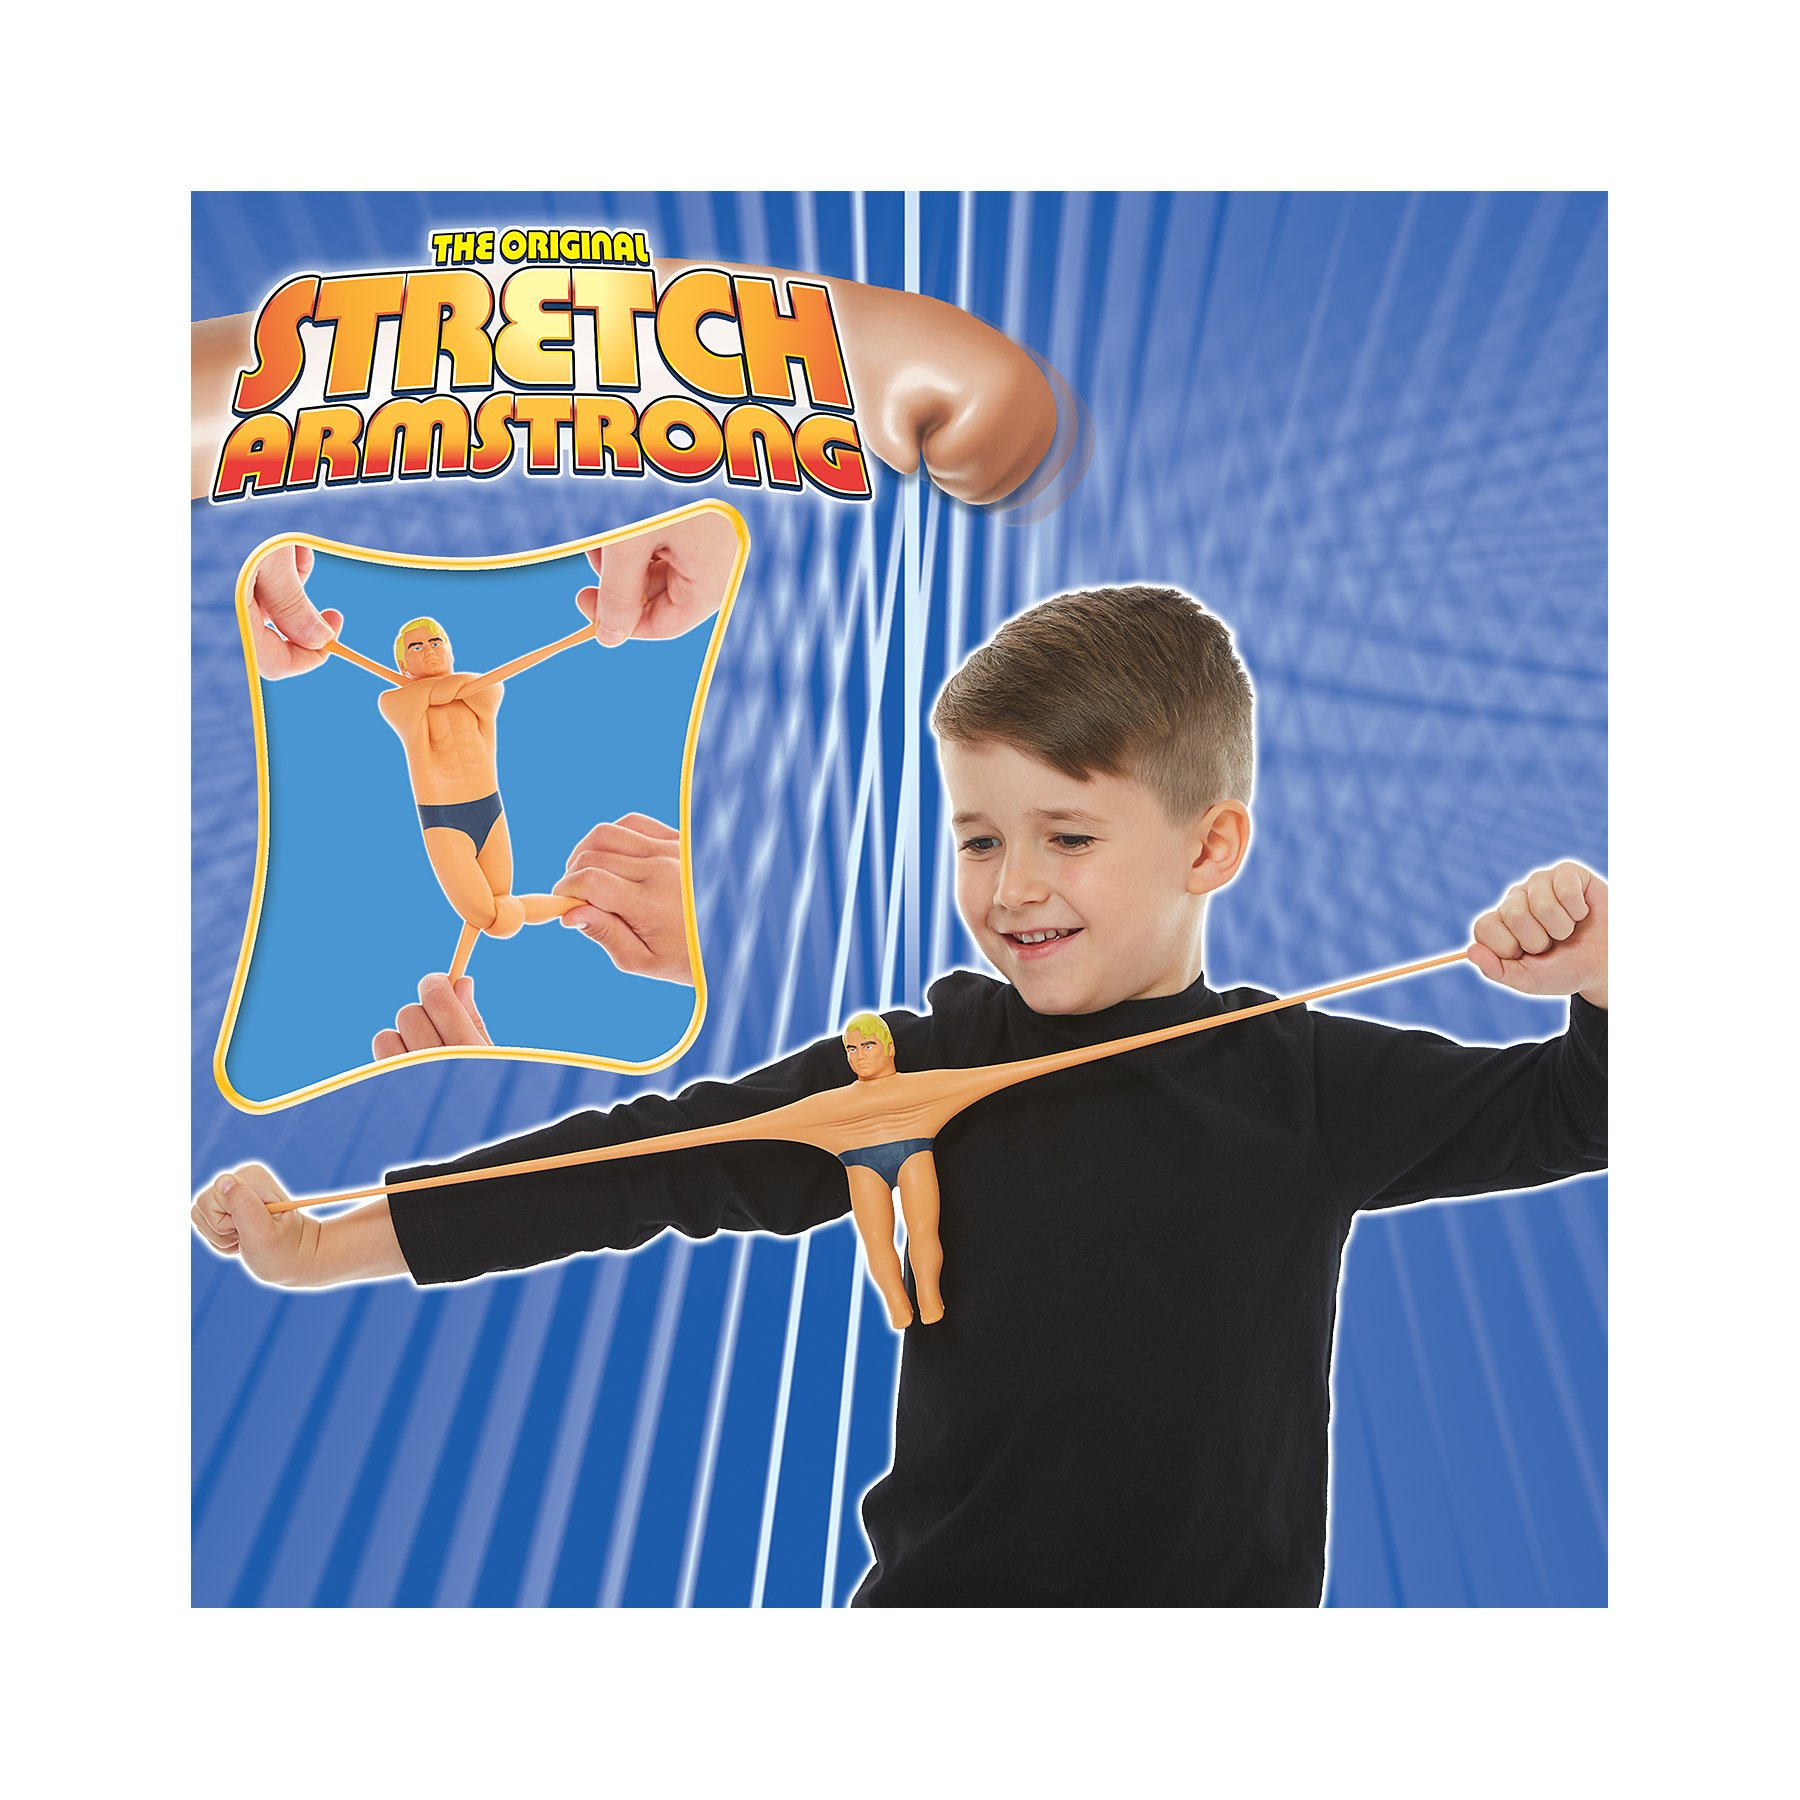 Stretch Armstrong Character Action Figure Goes back to Its Shape 12 Inch Tall